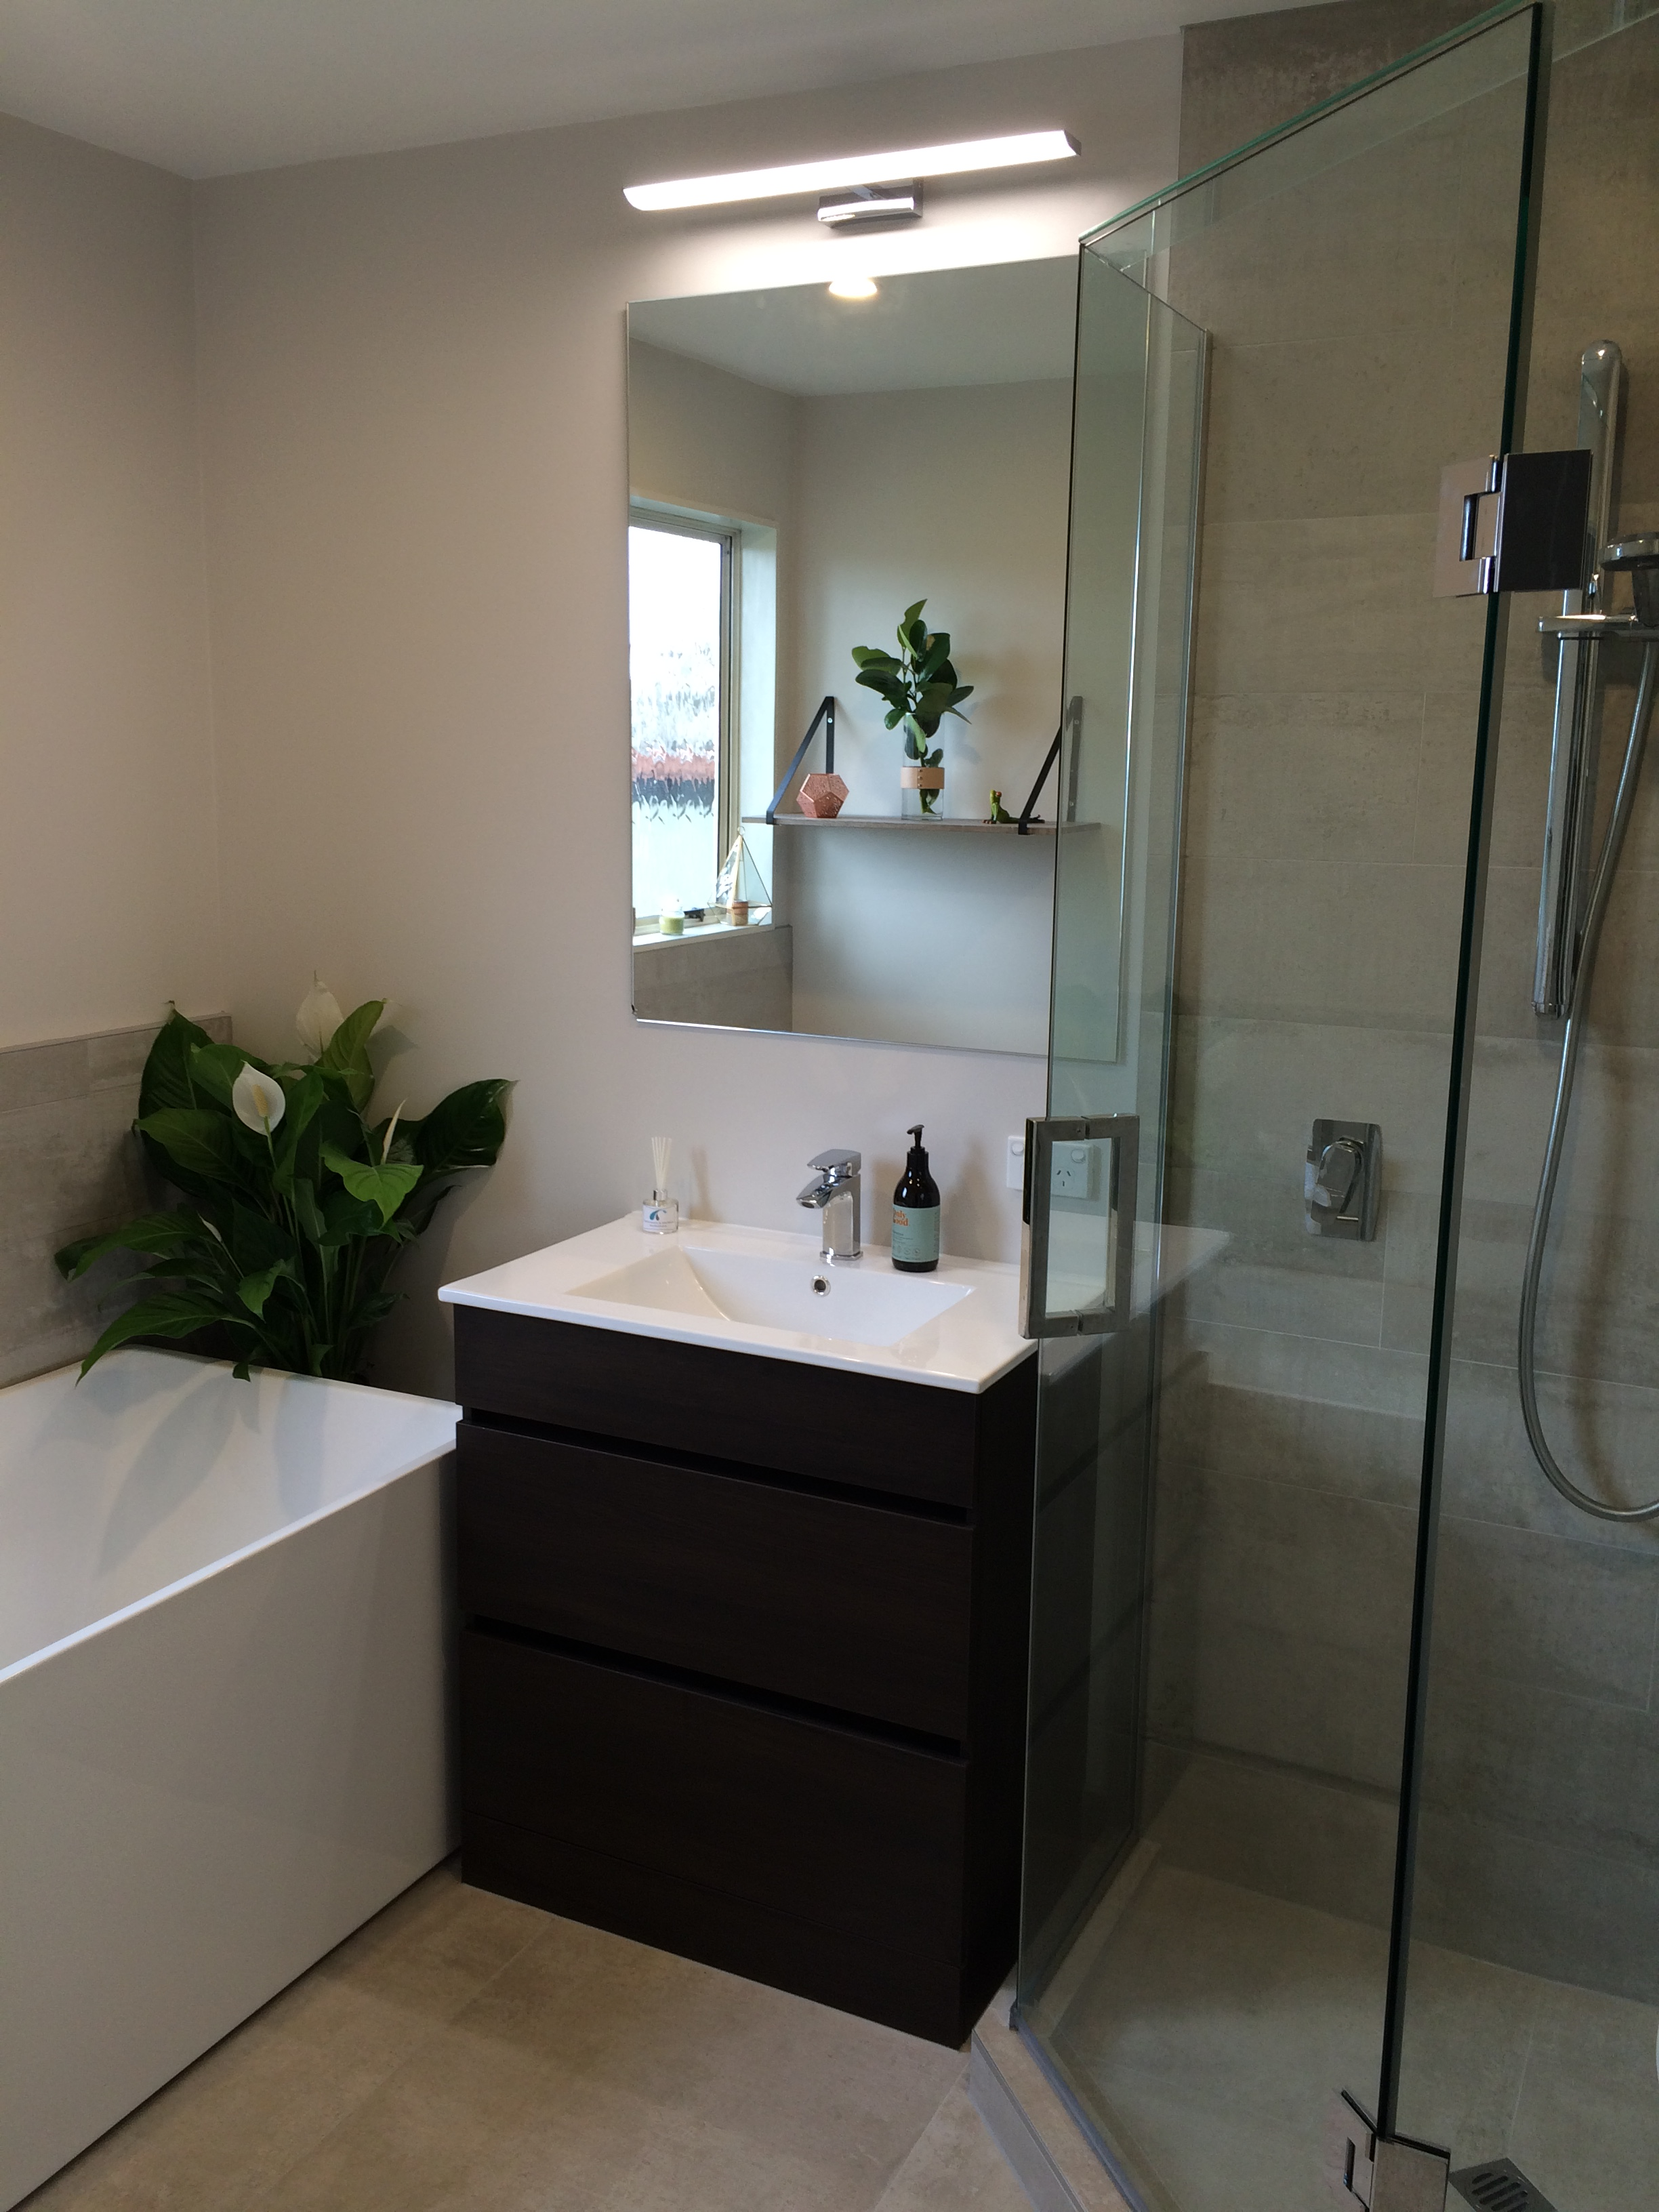 Bathrooms & Kitchens renovation in Ravenwood Drive, Forrest Hill